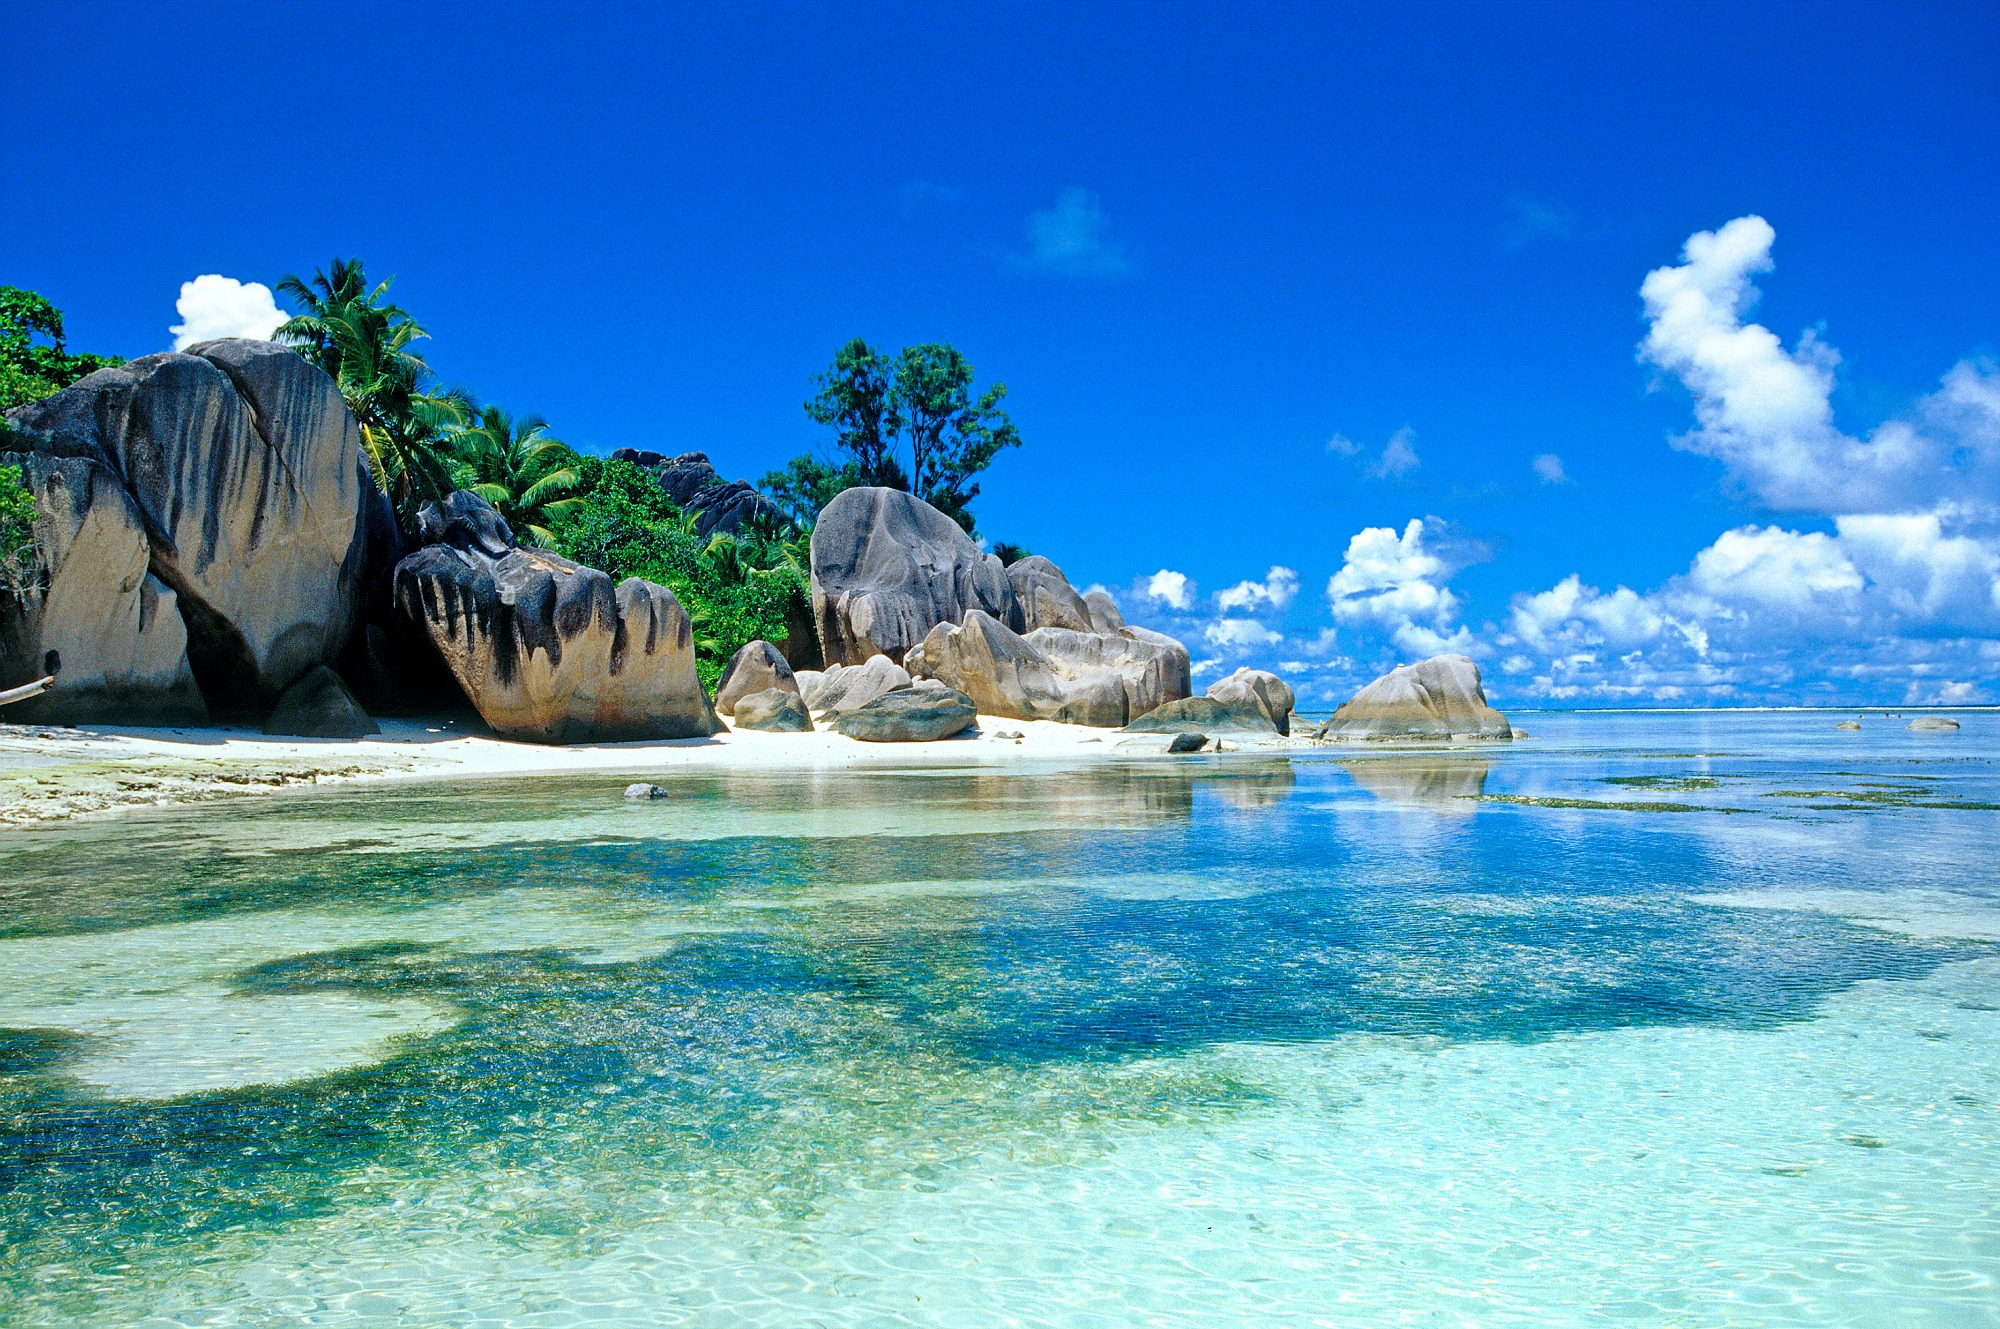 a1Seychelles-Islands-in-the-Indian-Ocean